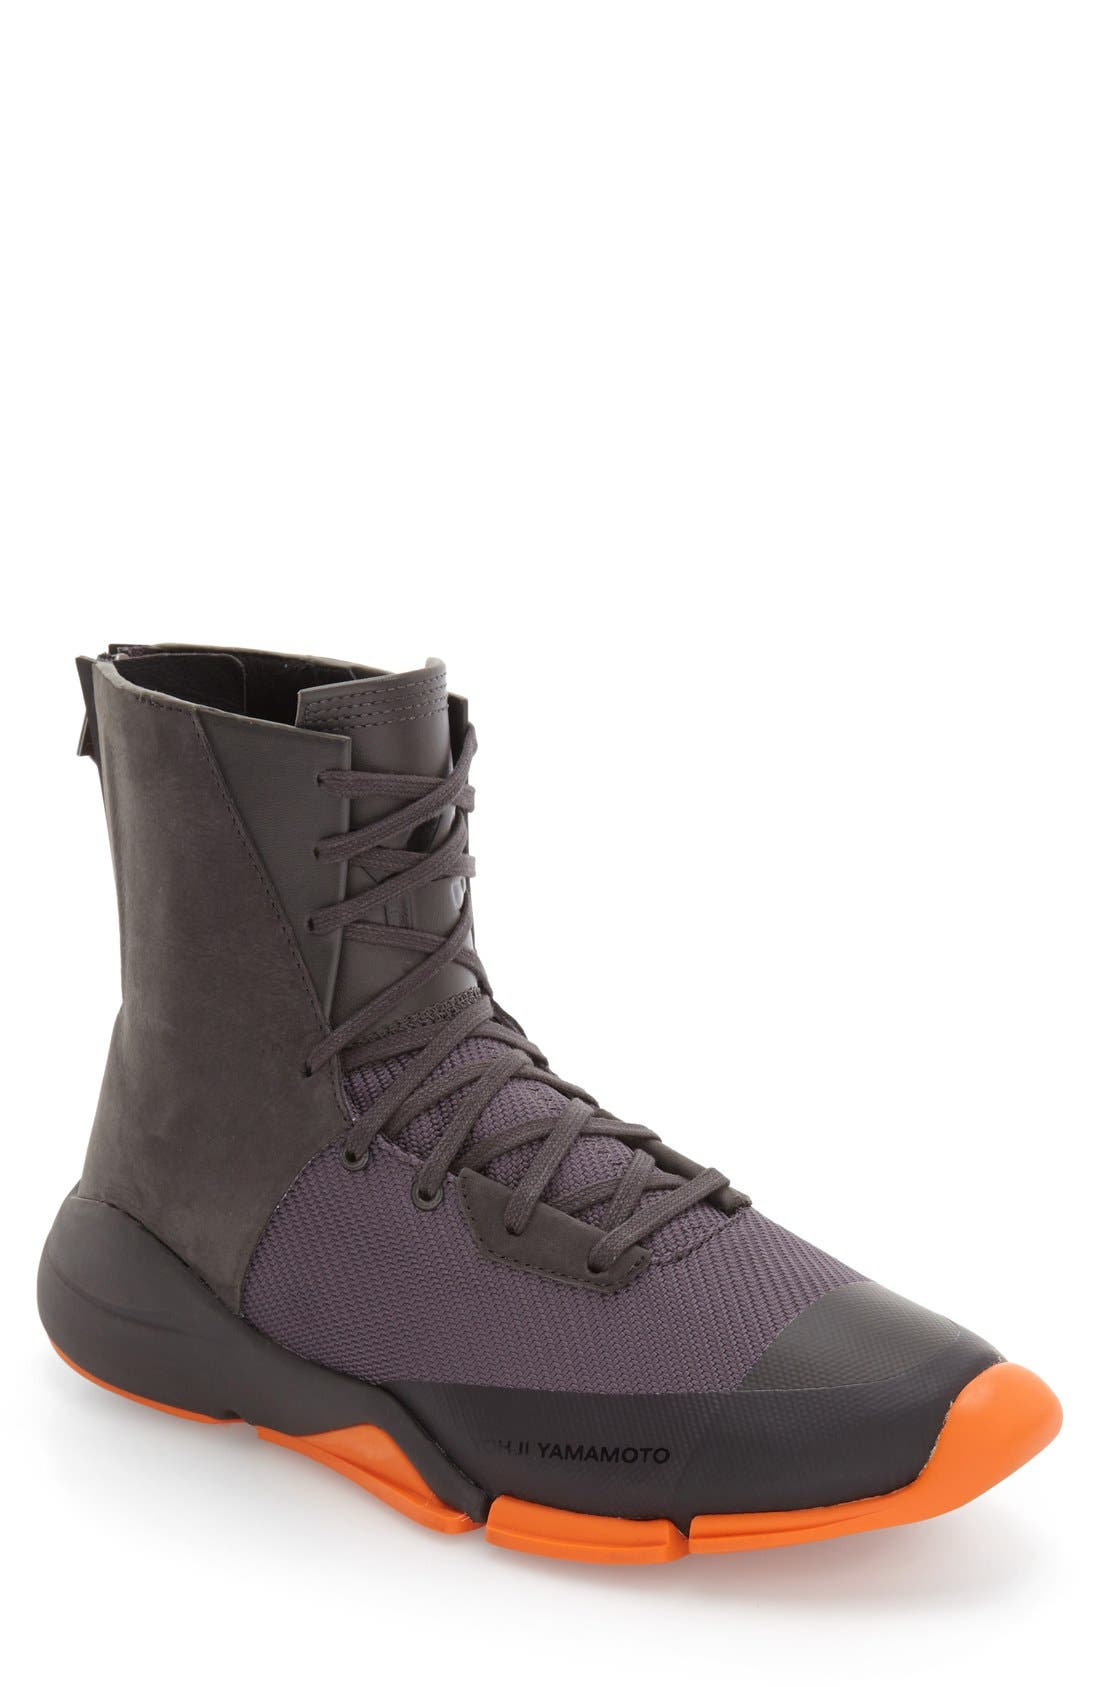 Future Zip High Top Sneaker,                             Main thumbnail 1, color,                             022